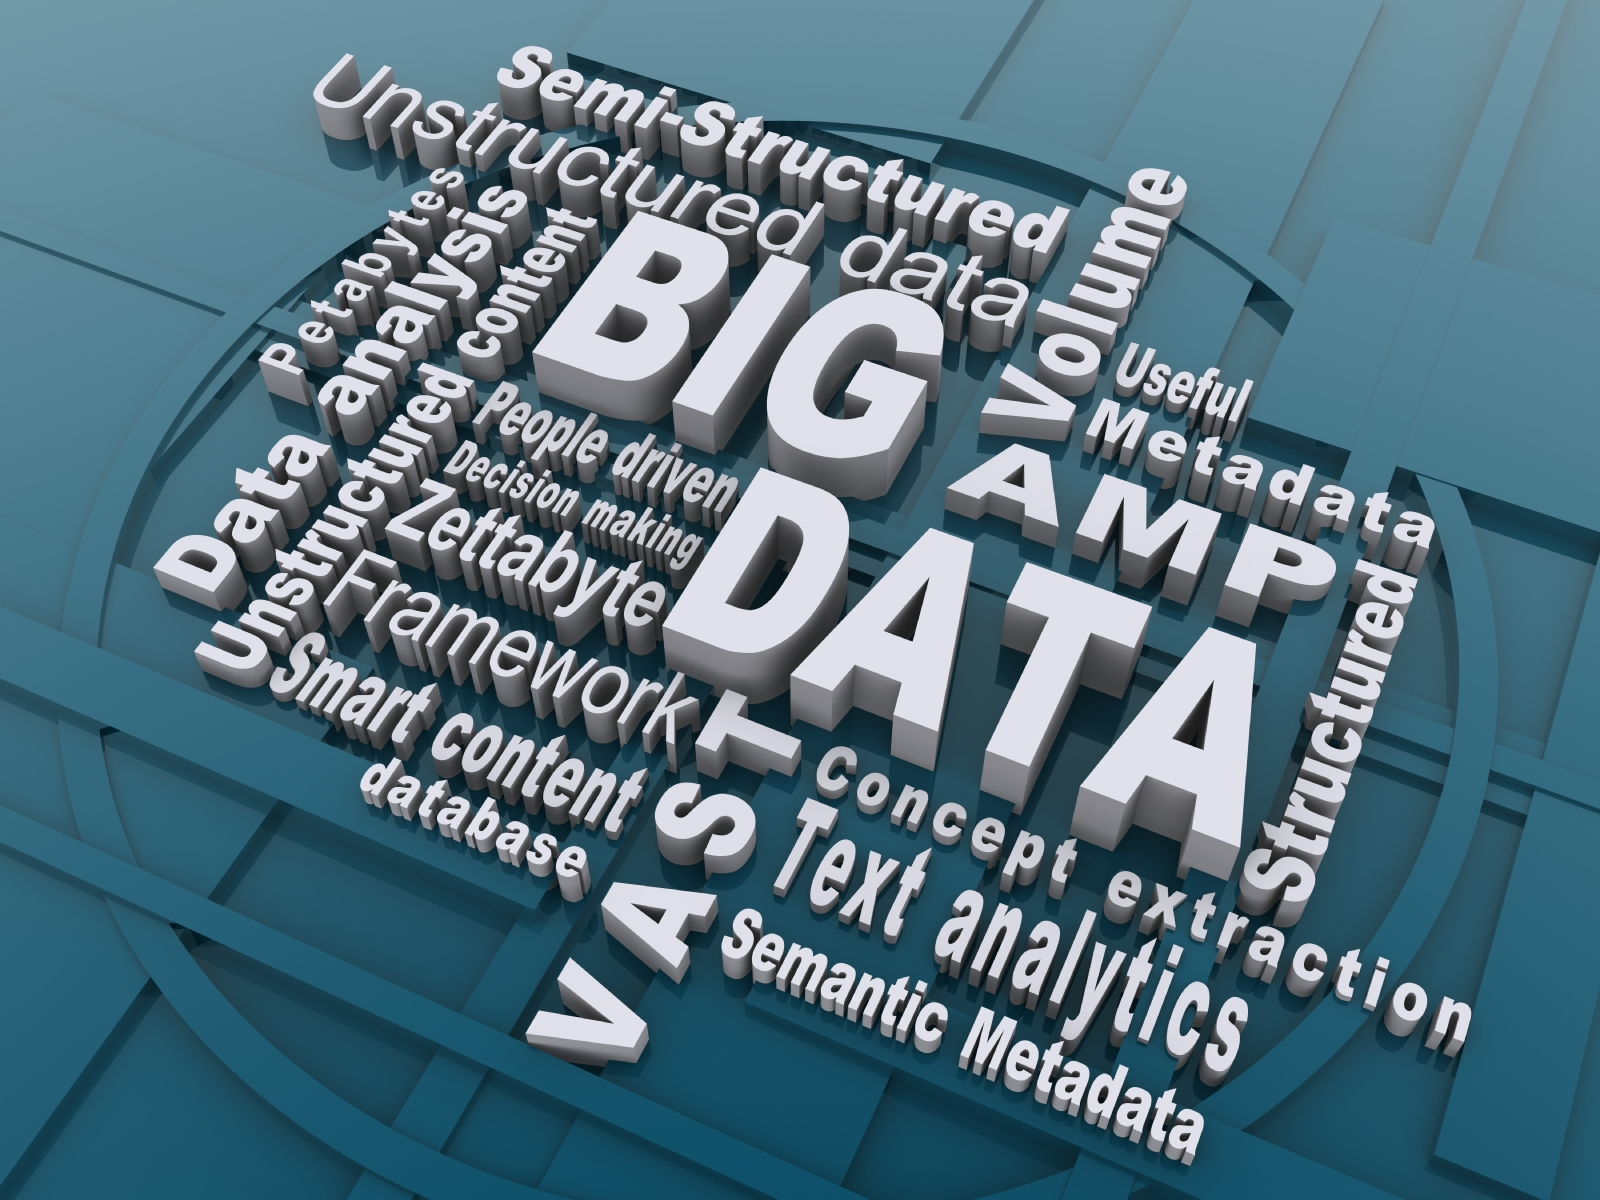 Why is big data a big deal?